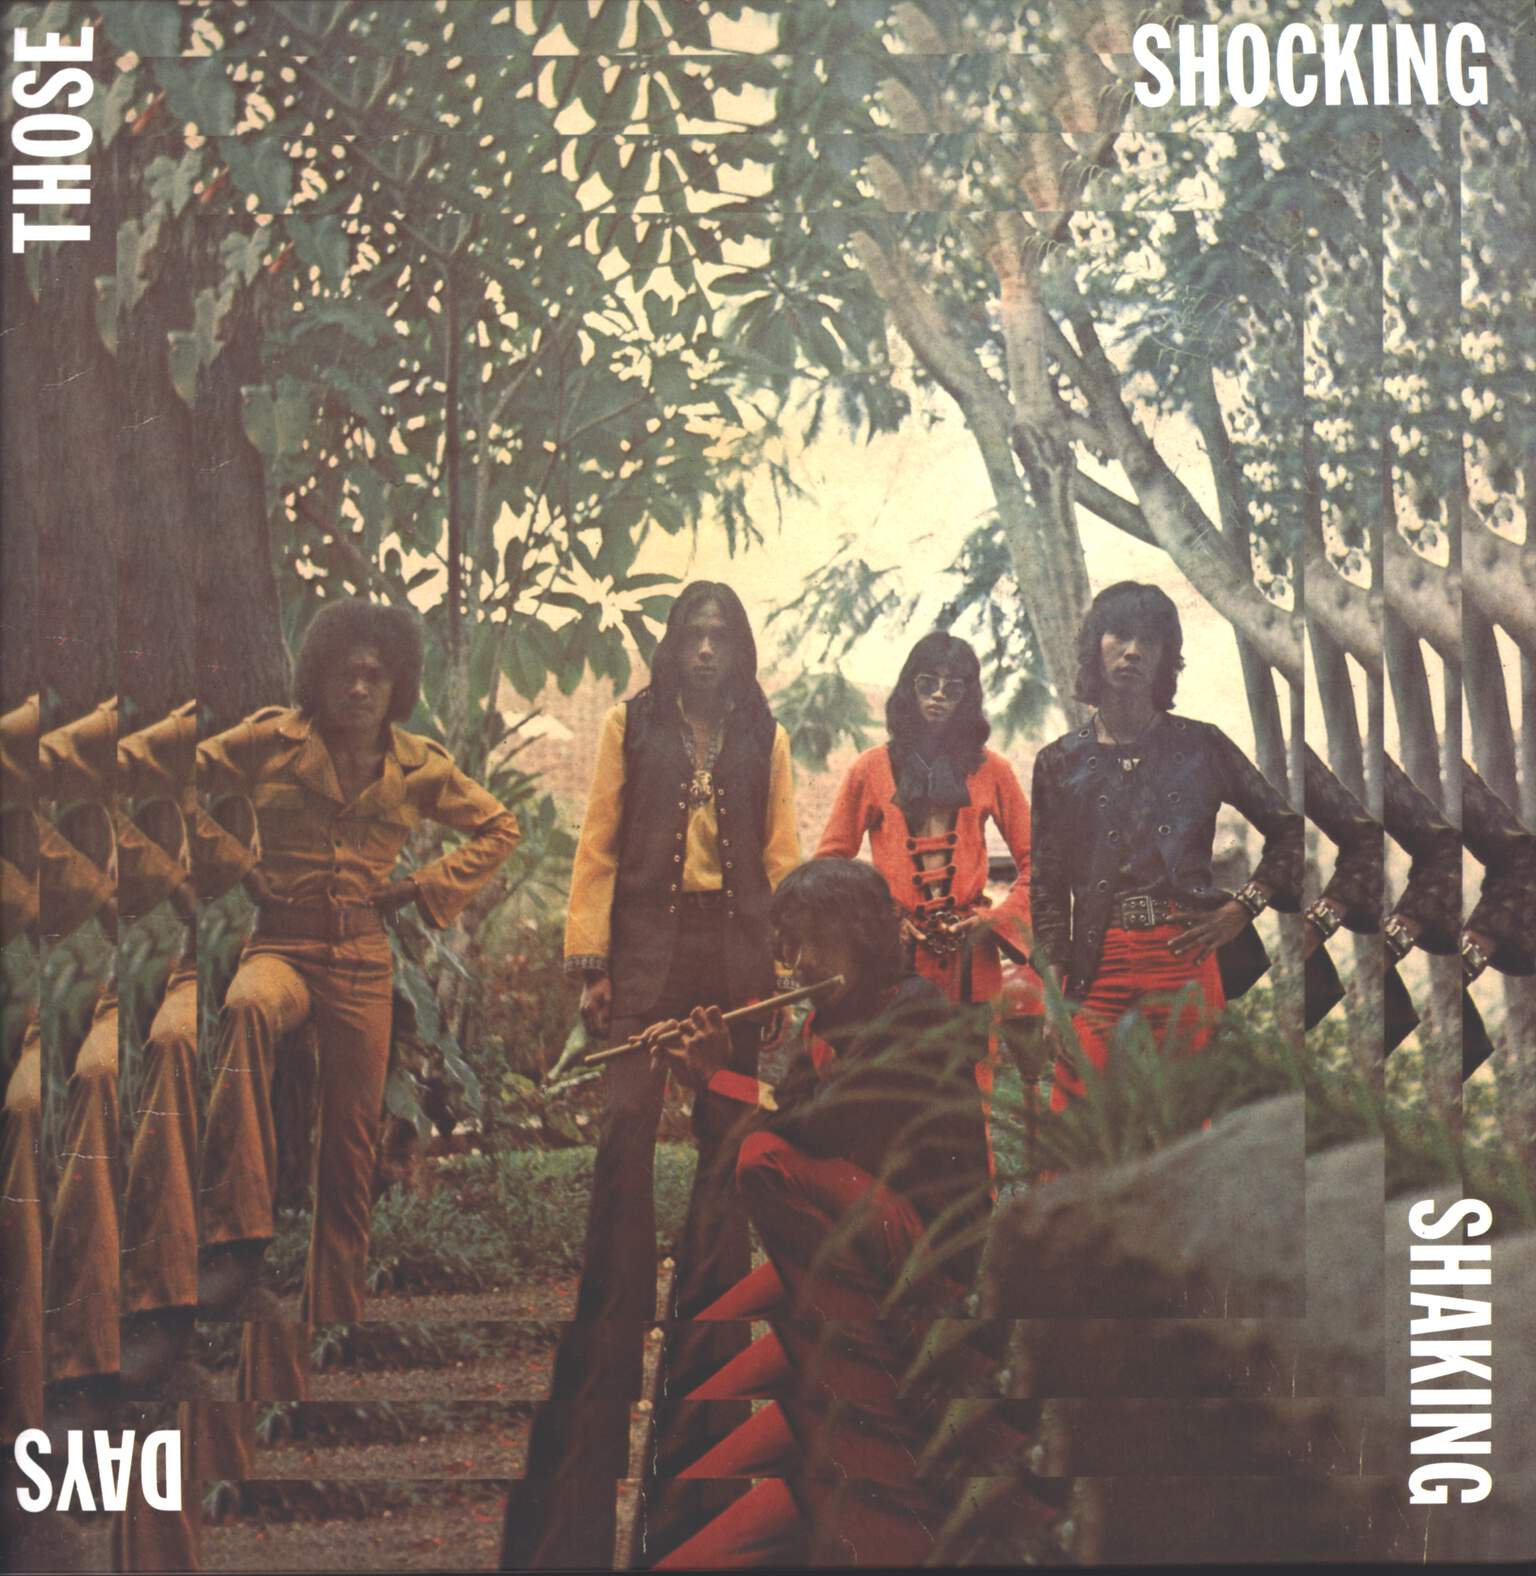 Various: Those Shocking Shaking Days (Indonesian Hard, Psychedelic, Progressive Rock And Funk: 1970 - 1978), LP (Vinyl)